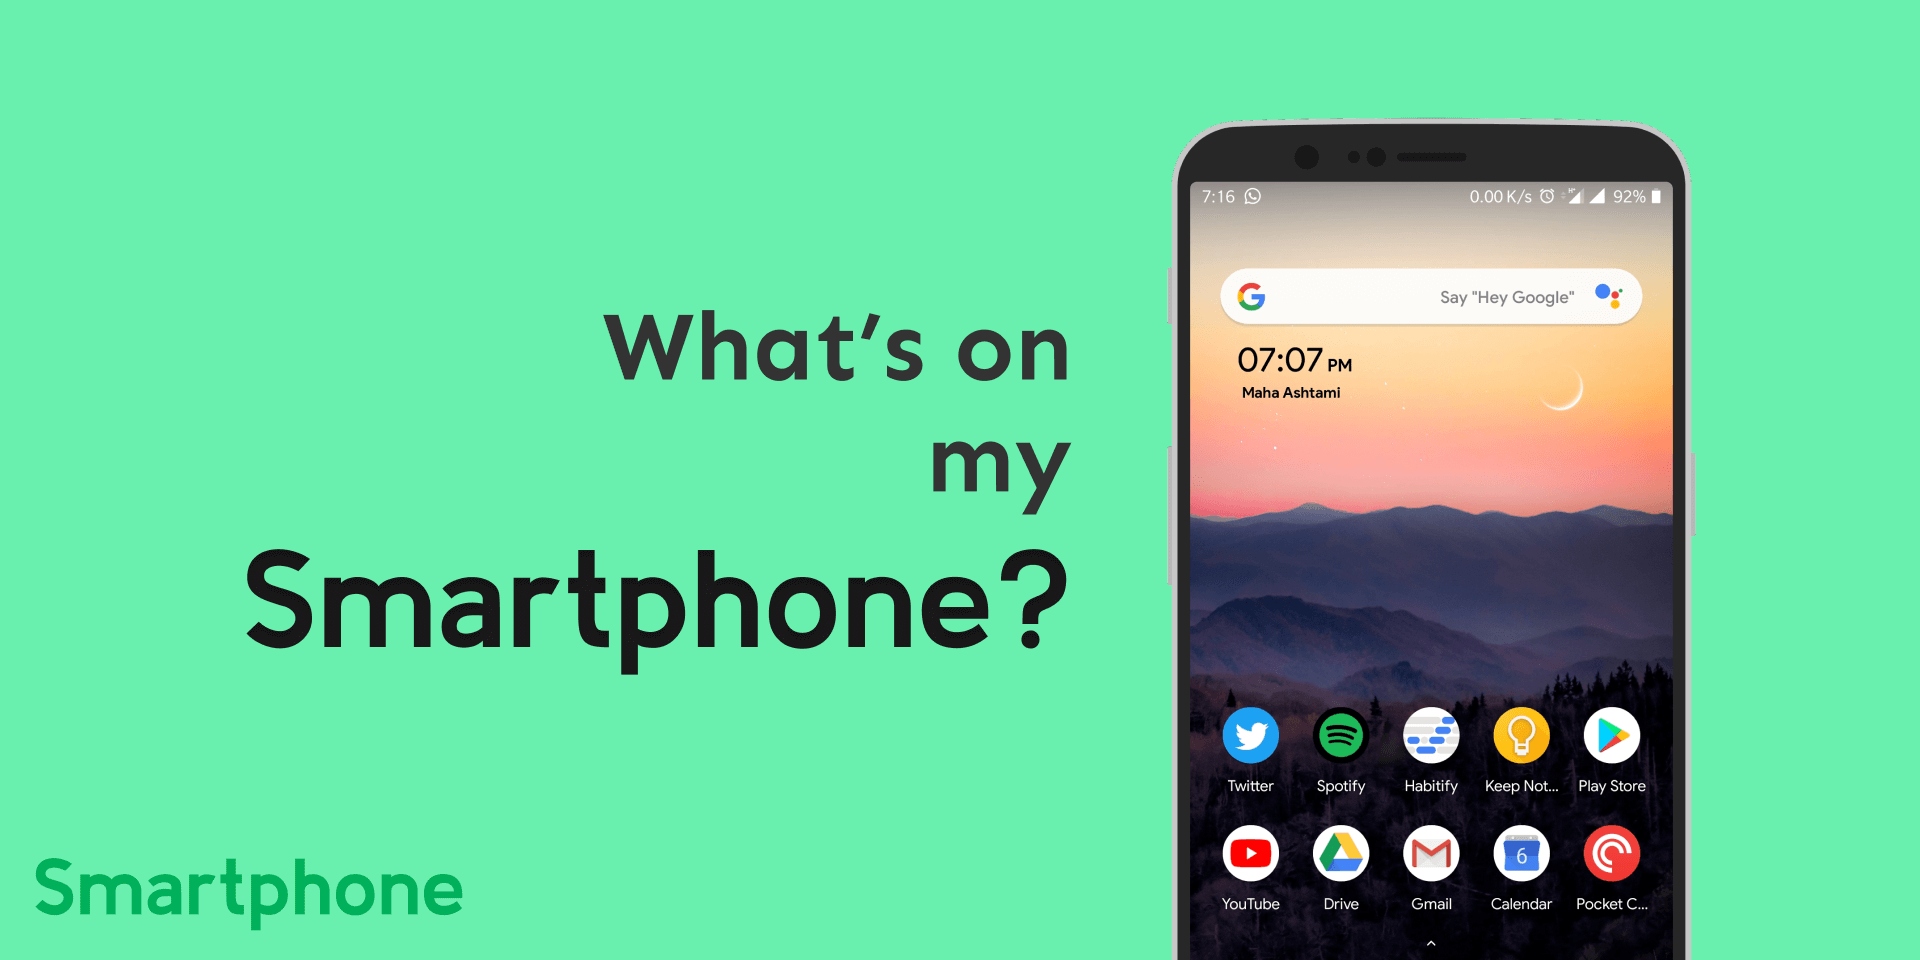 What's on my Smartphone?